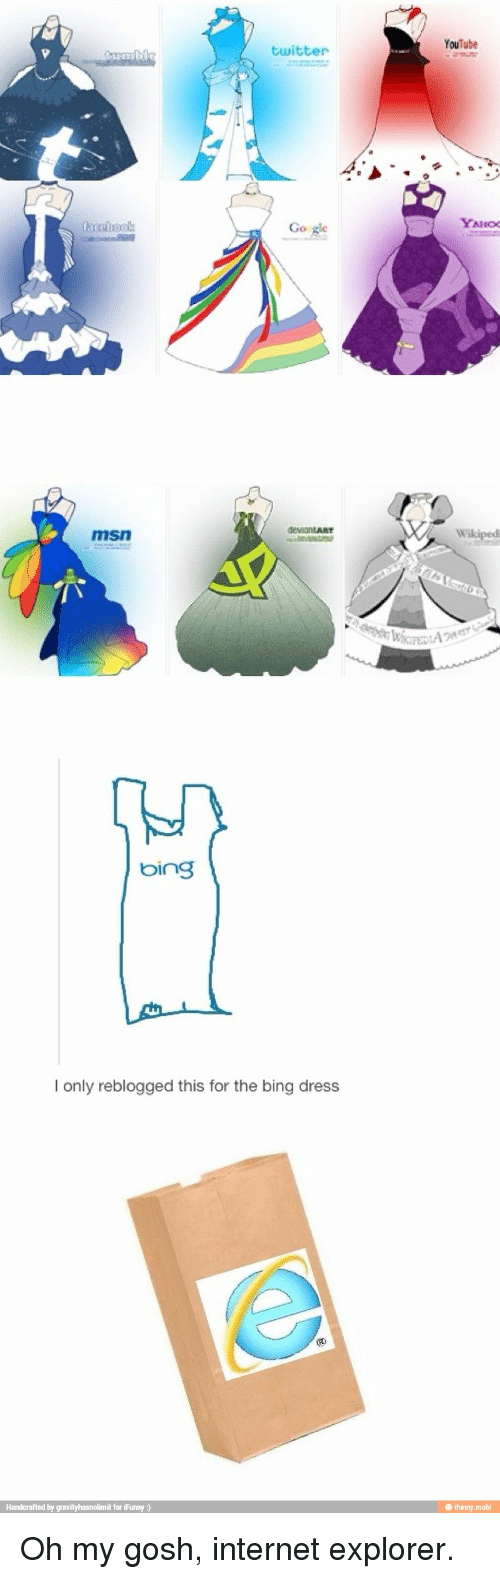 Internet, Twitter, and youtube.com: YouTube  twitter  Go gle  msn  bing  I only reblogged this for the bing dress  ifunny mobi Oh my gosh, internet explorer.